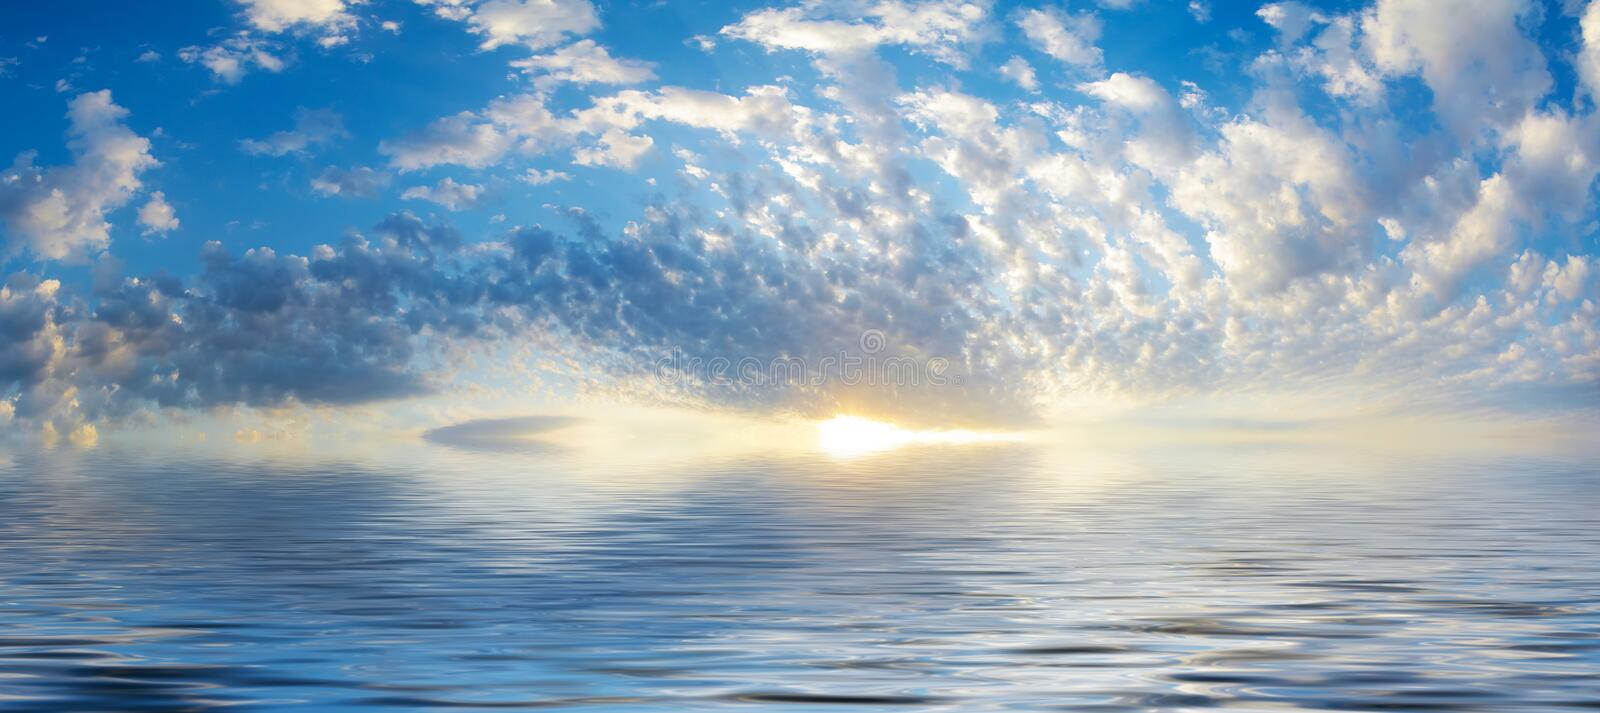 Background of seascape with rising sun. Summer sky with rising sun above calm water.Seascape with beautiful reflection white clouds in sunny weather stock images